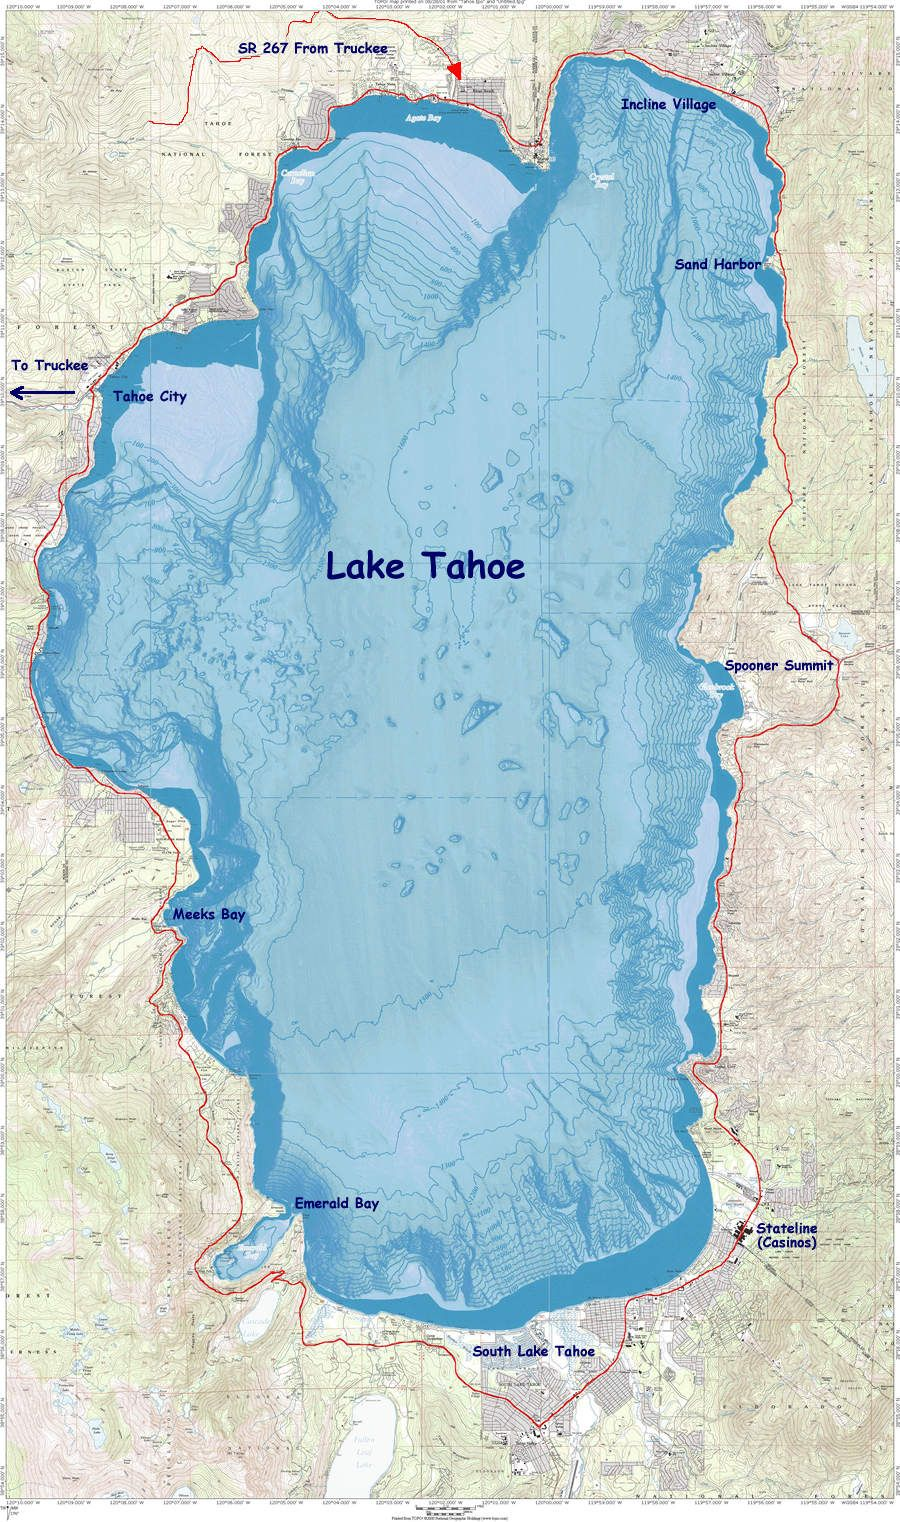 south lake tahoe elevation map Lake Tahoe Map Cycling Route In Red Encircling An Underwater